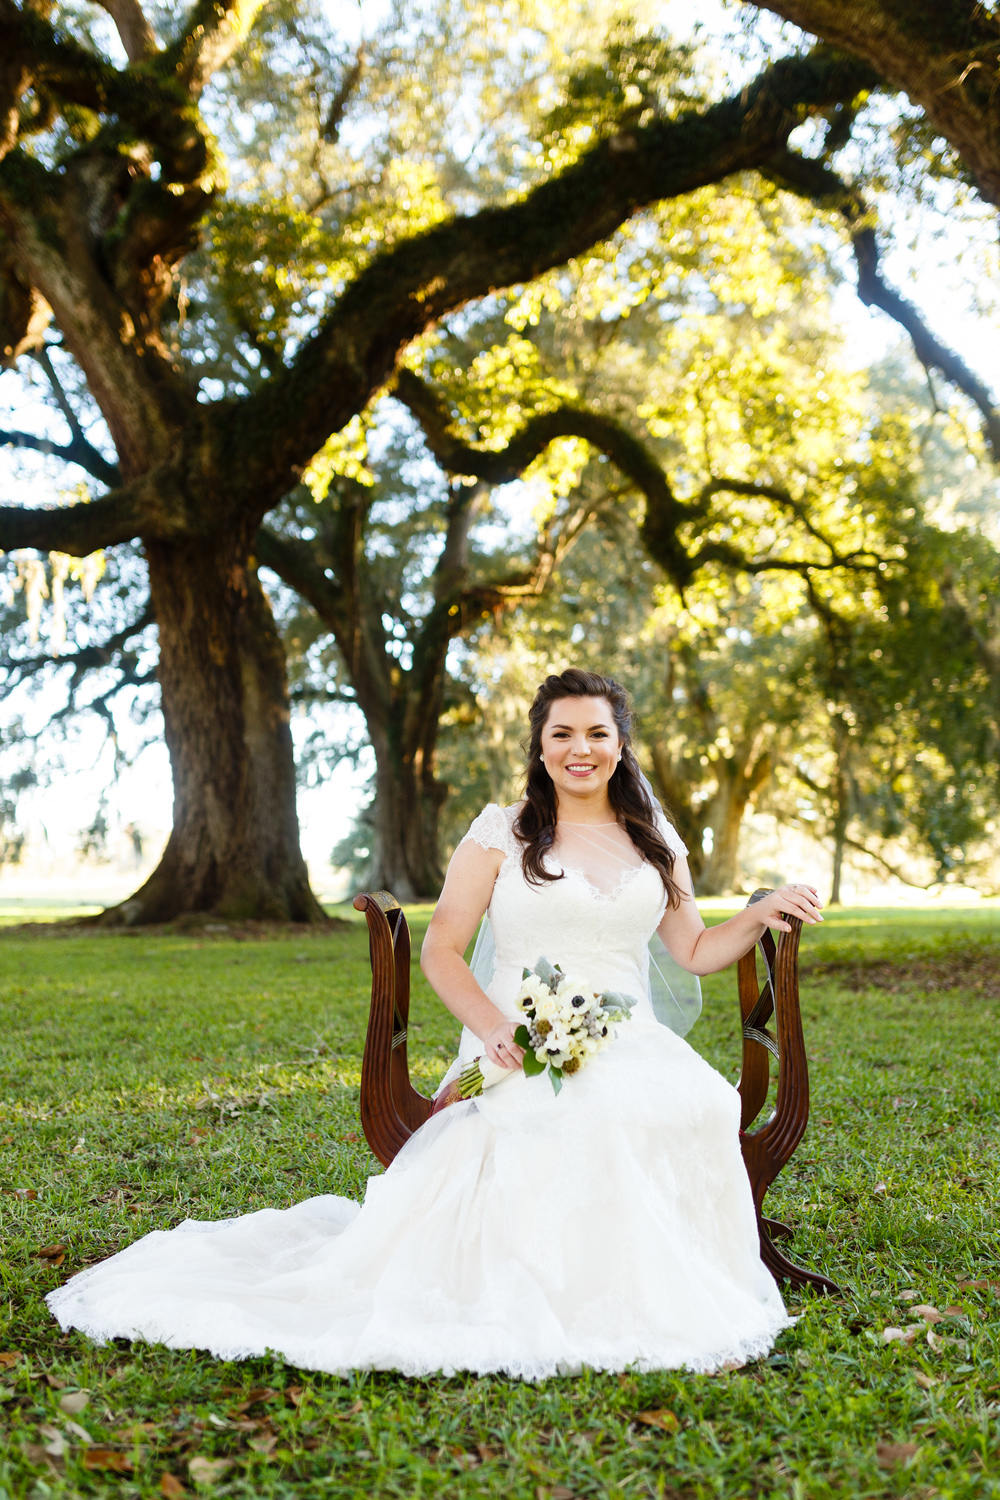 Bridal-wedding-portrait-lafayette-broussard-youngsville-photographer-4.jpg